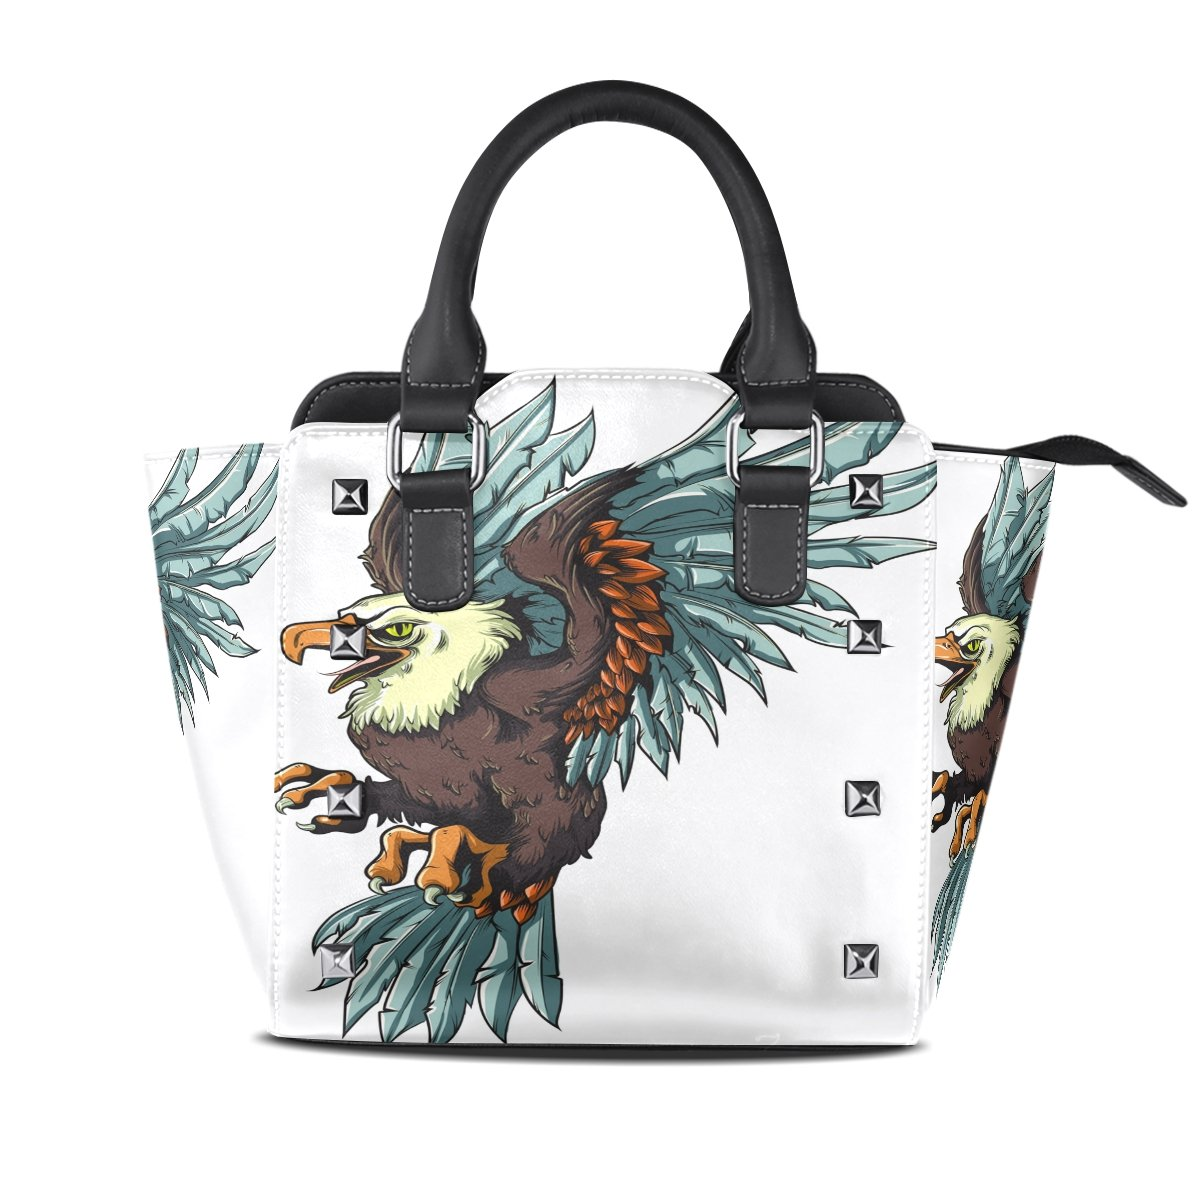 Womens Genuine Leather Hangbags Tote Bags Eagle Purse Shoulder Bags